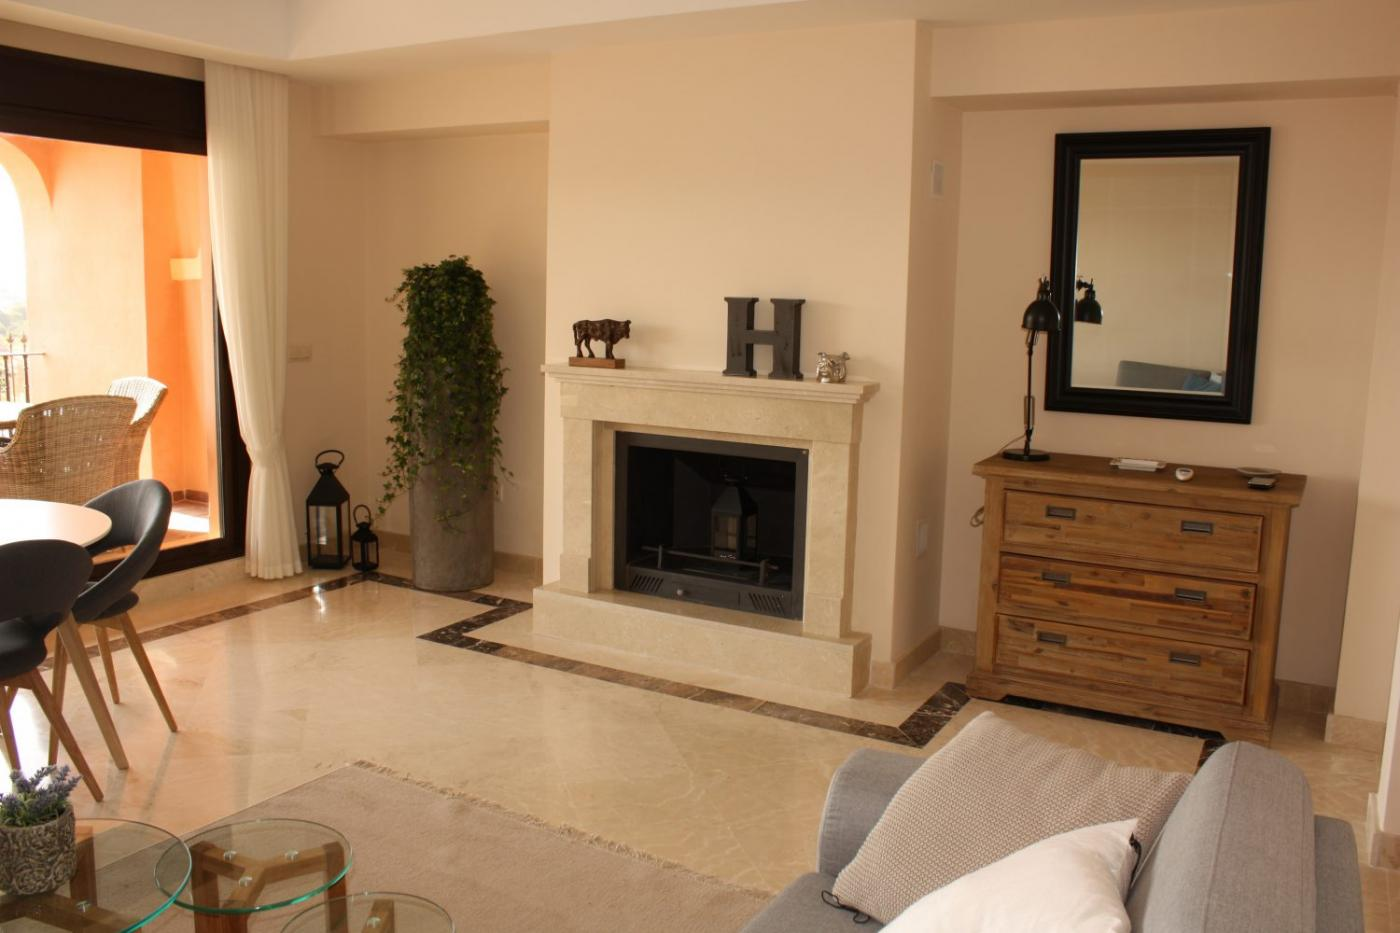 3 Bedroom Town House for Sale in Estepona |